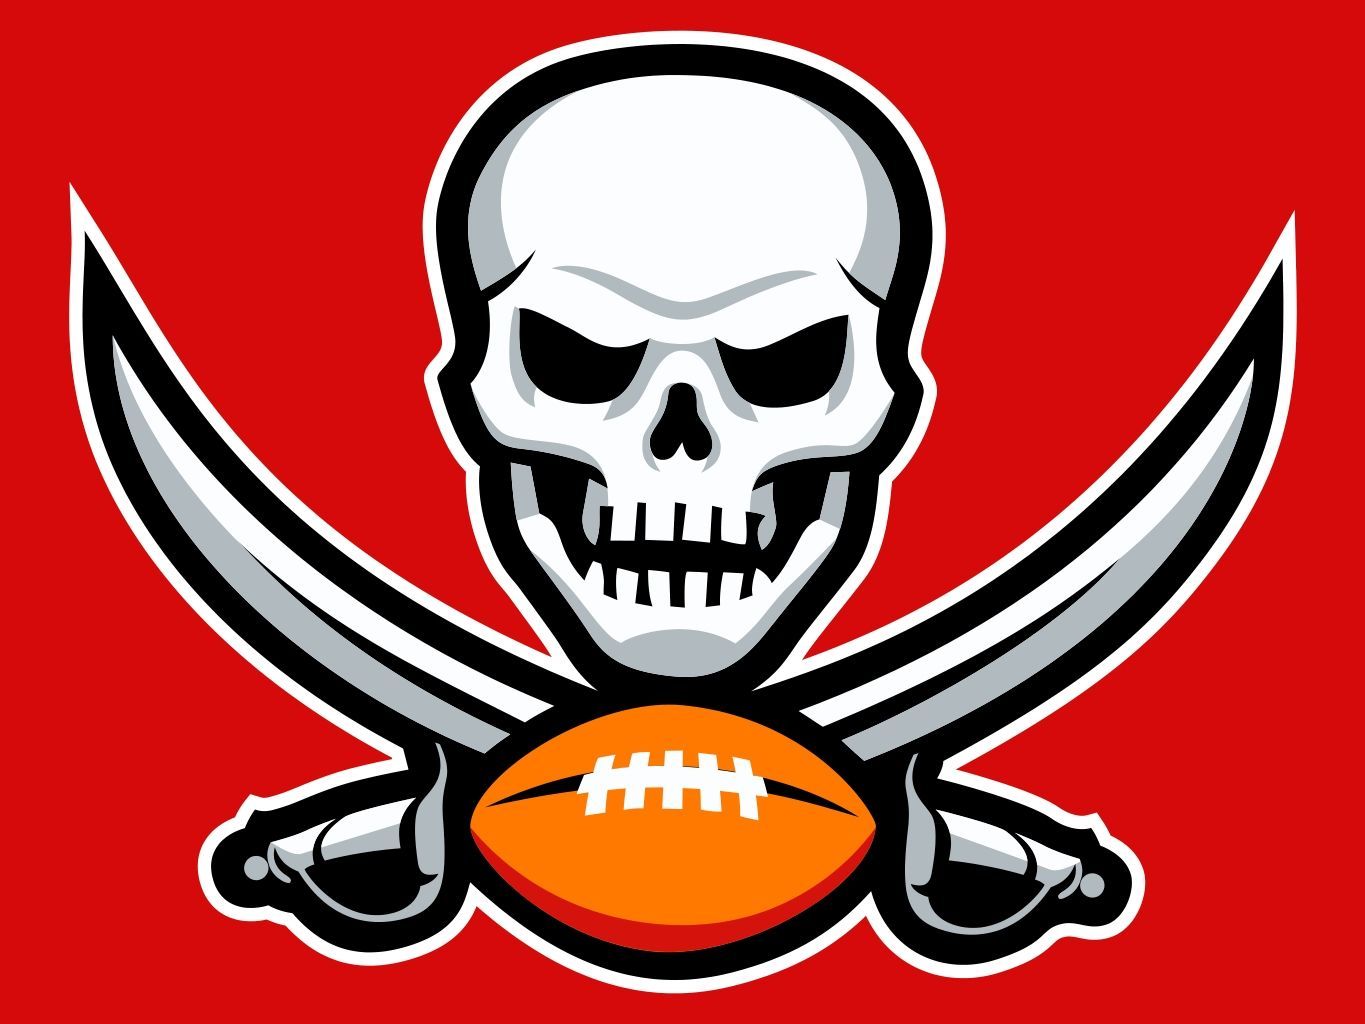 Tampa Bay Buccaneers Free Agent Update Tampa Bay Buccaneers Logo Tampa Bay Bucs Tampa Bay Buccaneers